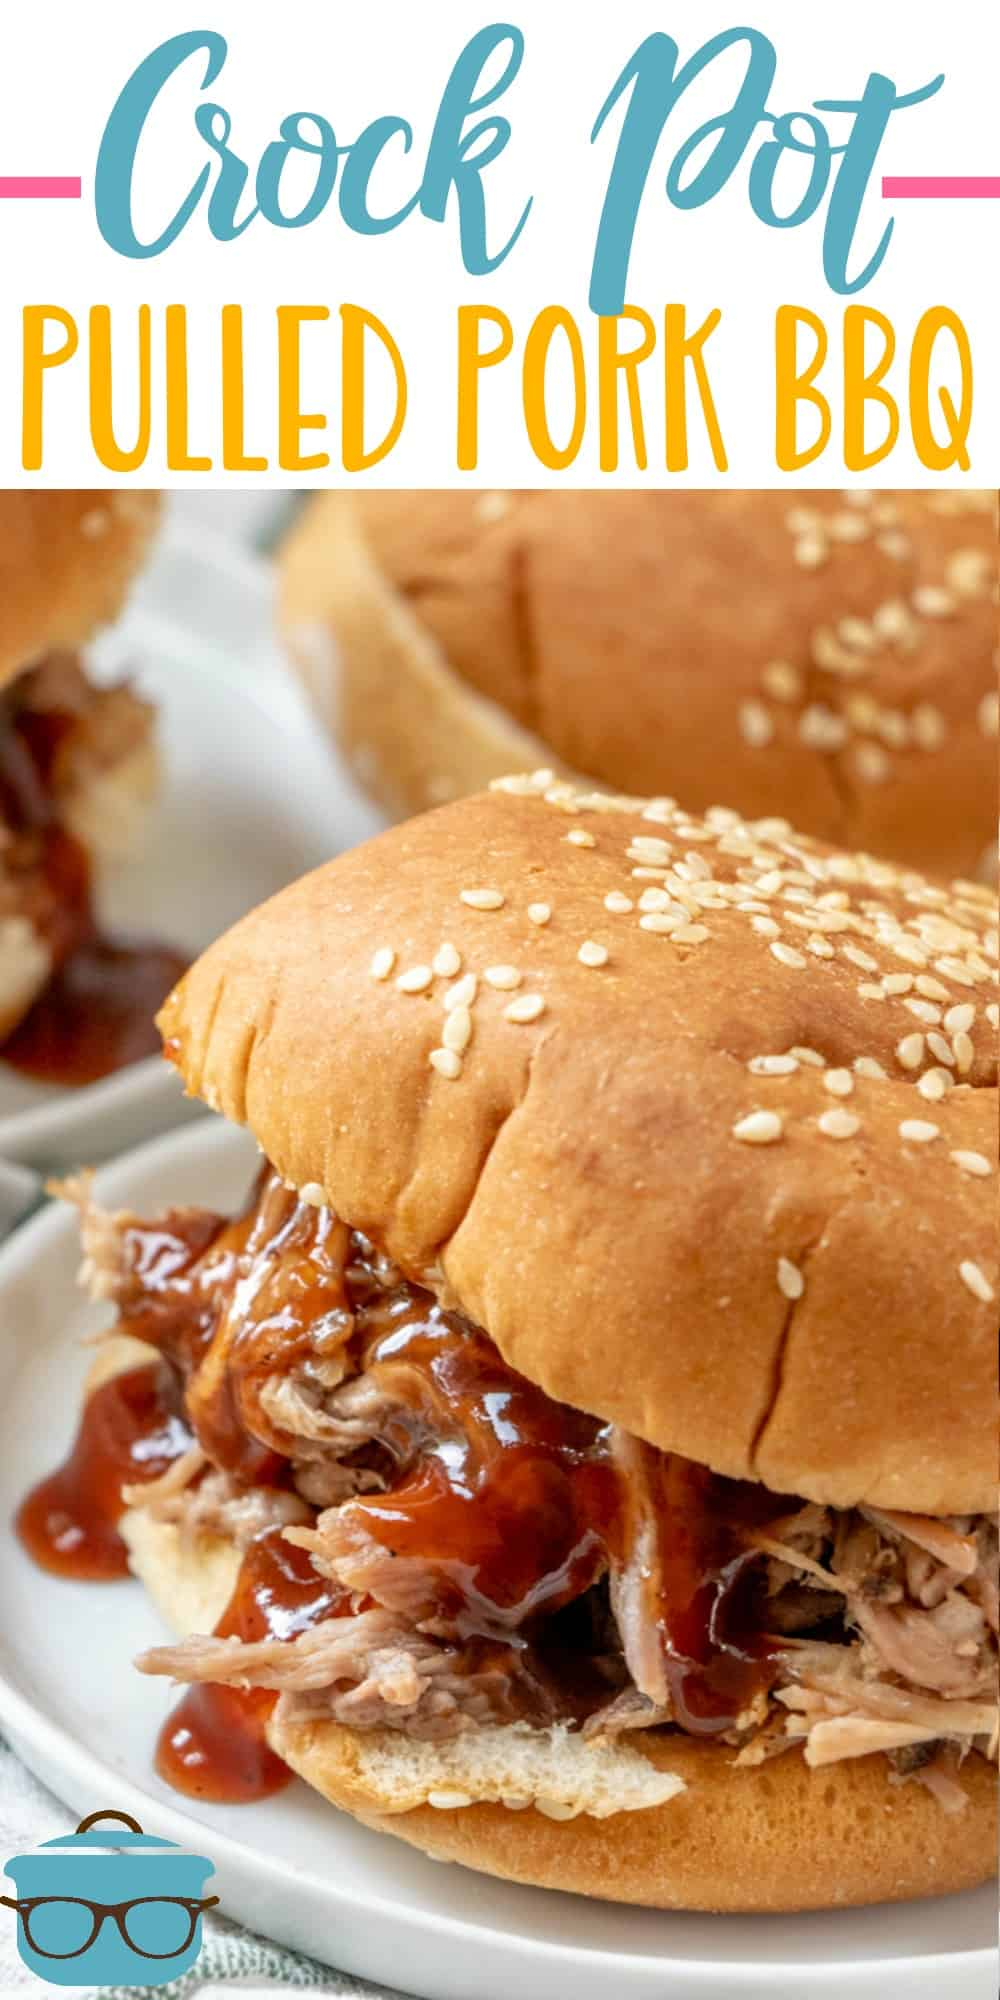 Crock Pot Pulled Pork uses a special rub and soda to make it come out super tender and flavorful! Delicious in sandwiches and topped with cole slaw! #pulledpork #crockpotrecipe